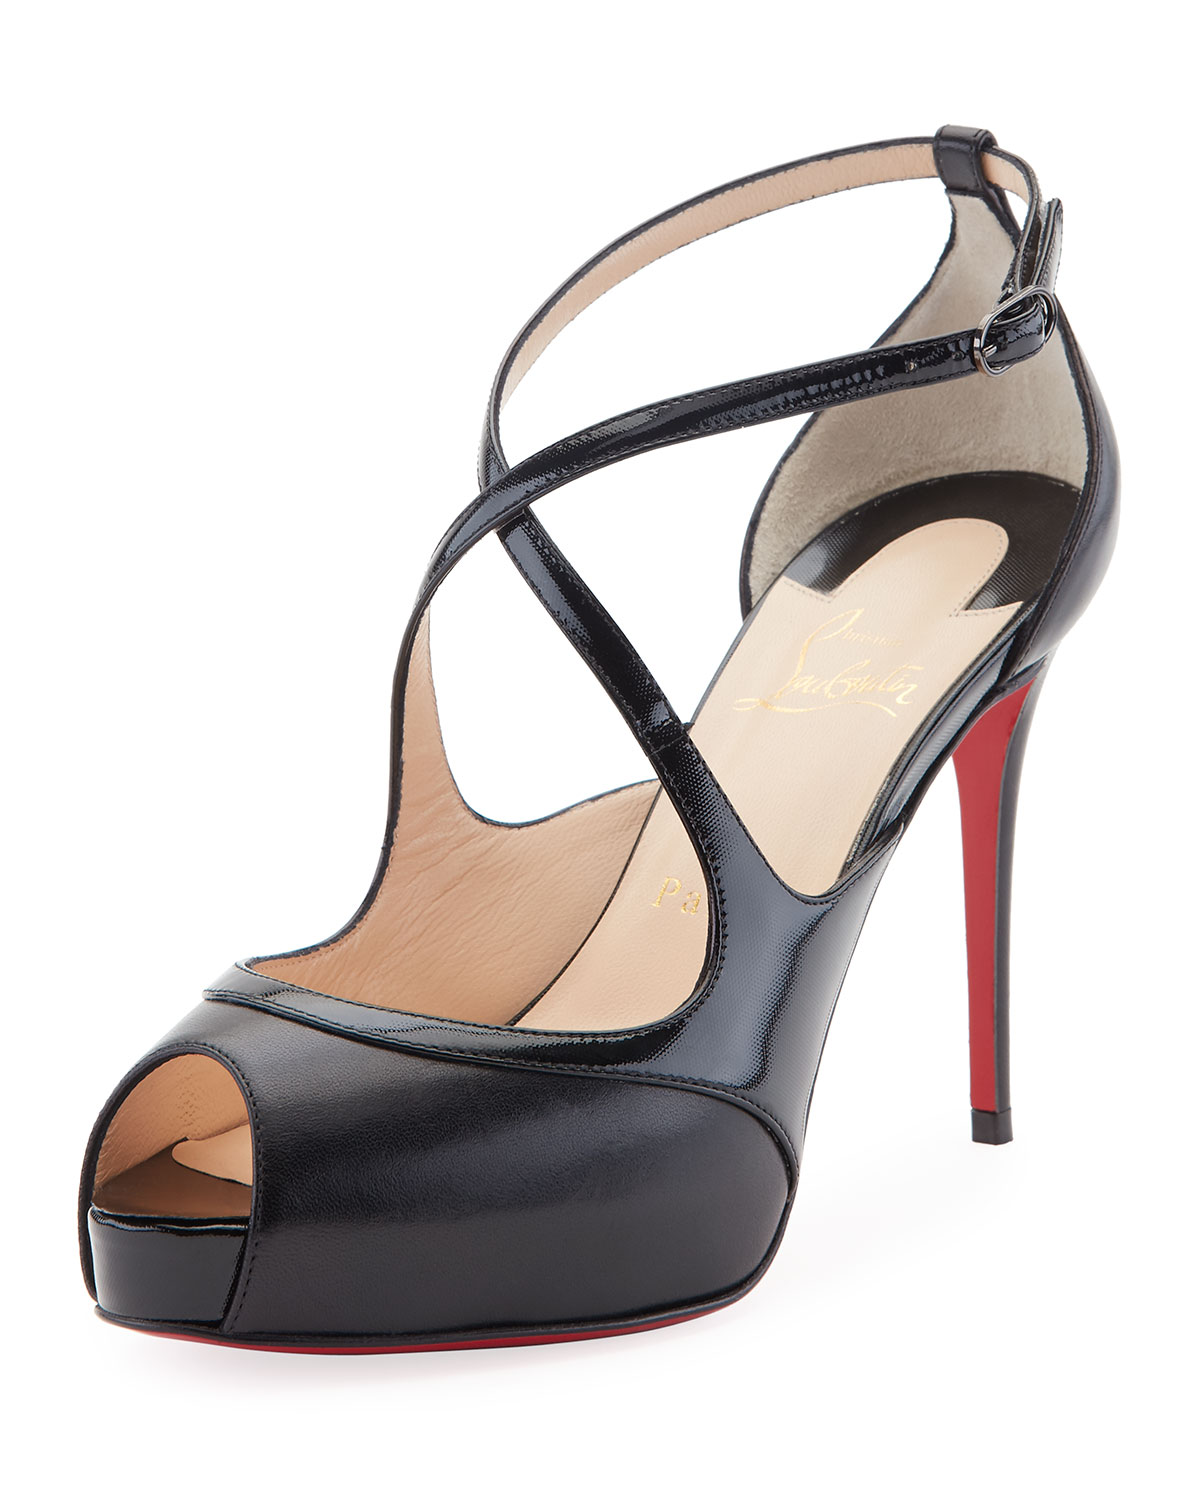 eac7189f3a5 Christian Louboutin Mira Bella Leather Red Sole Sandal